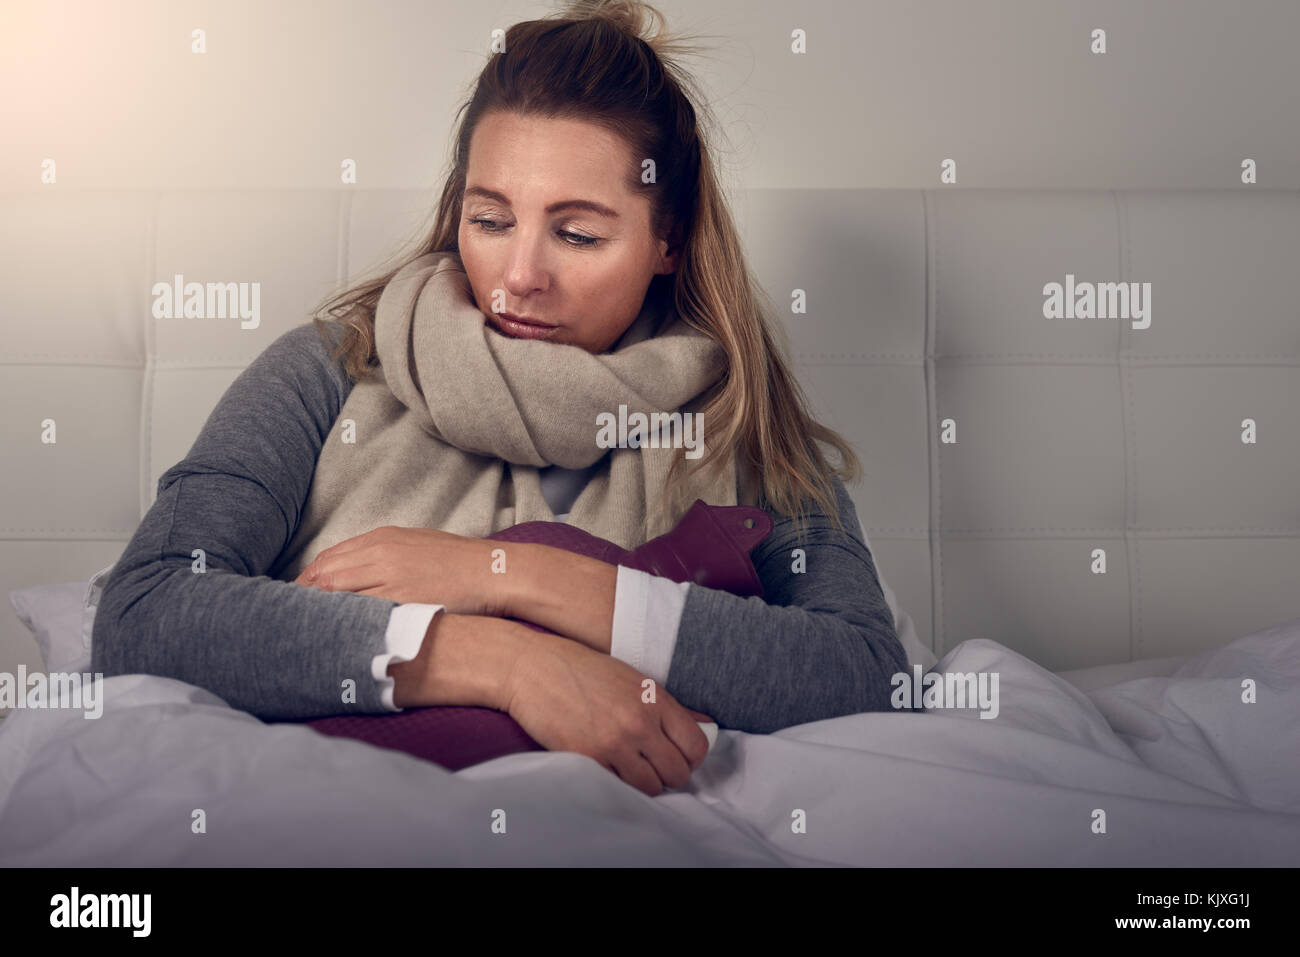 Sick woman wrapped in a warm scarf and clutching a hot water bottle sitting using nasal spray with a miserable expression - Stock Image